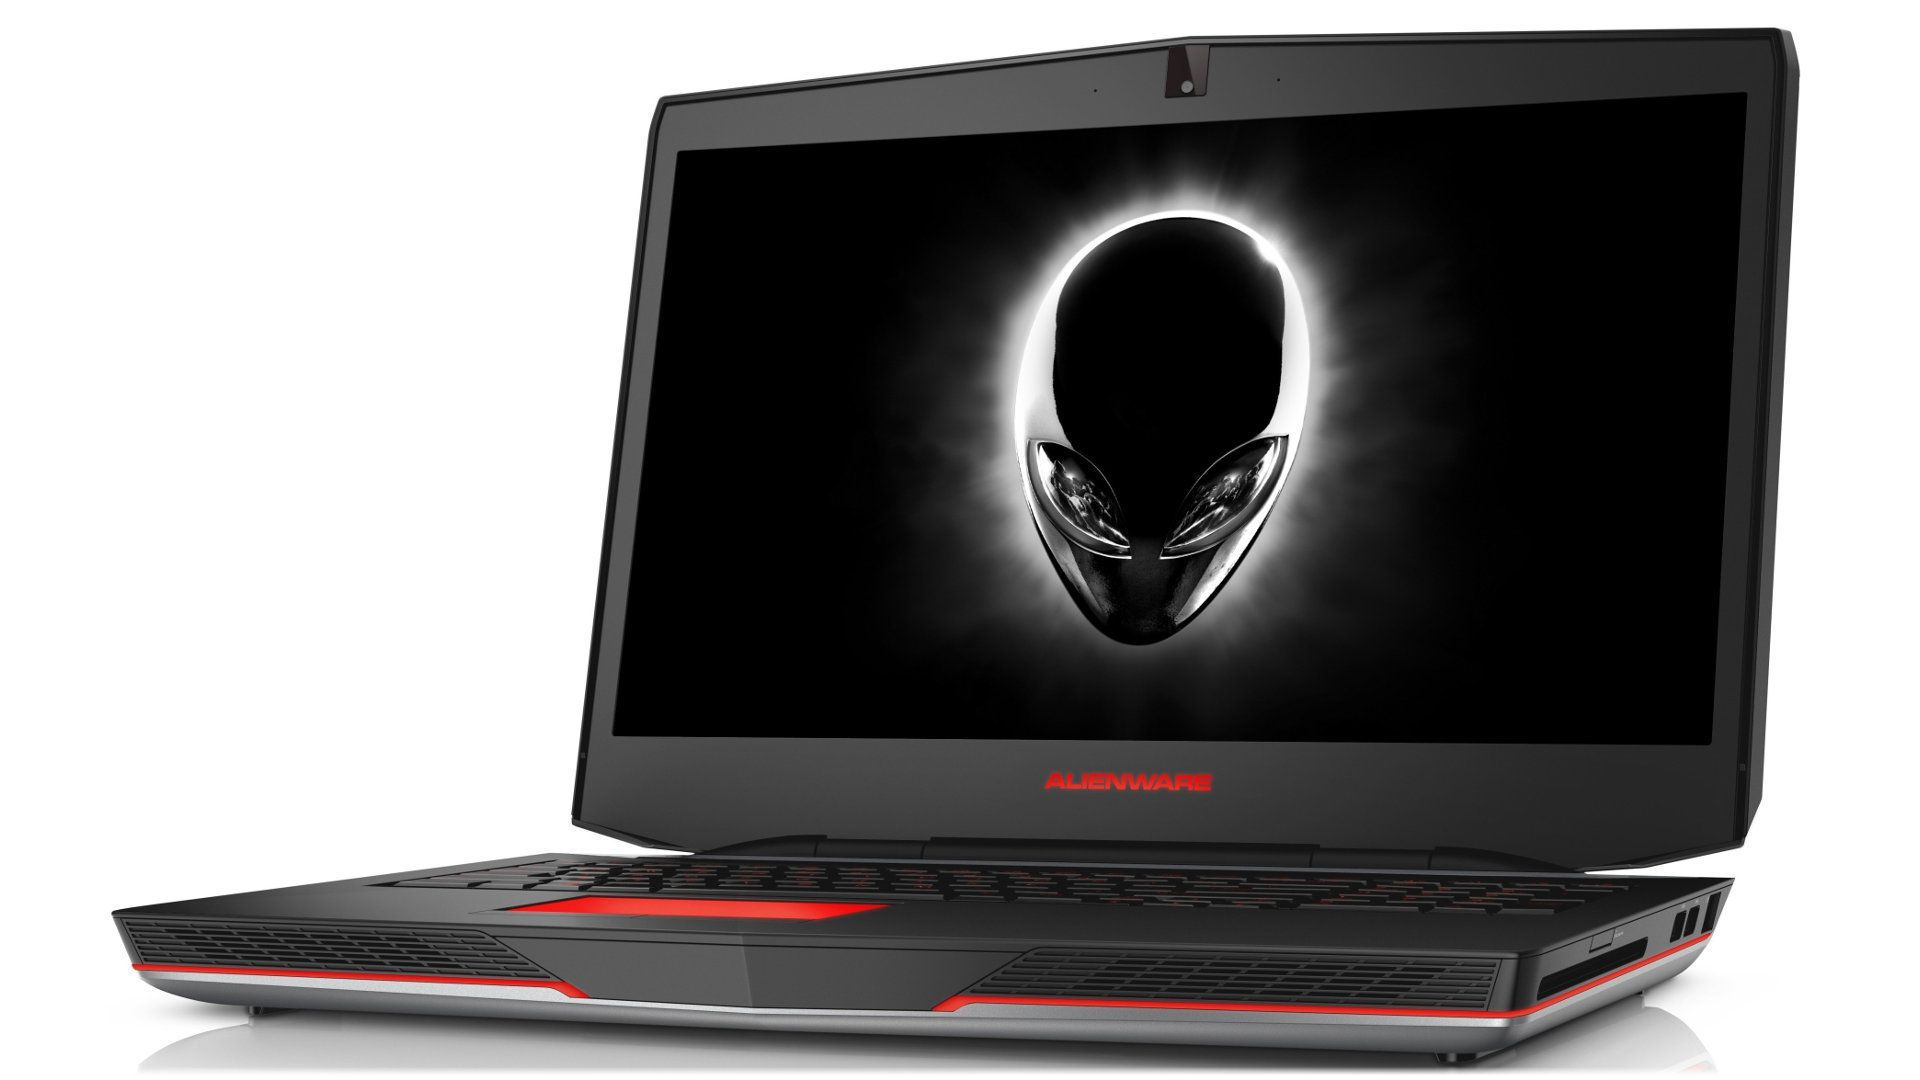 Alienware Laptop Computer Wallpaper